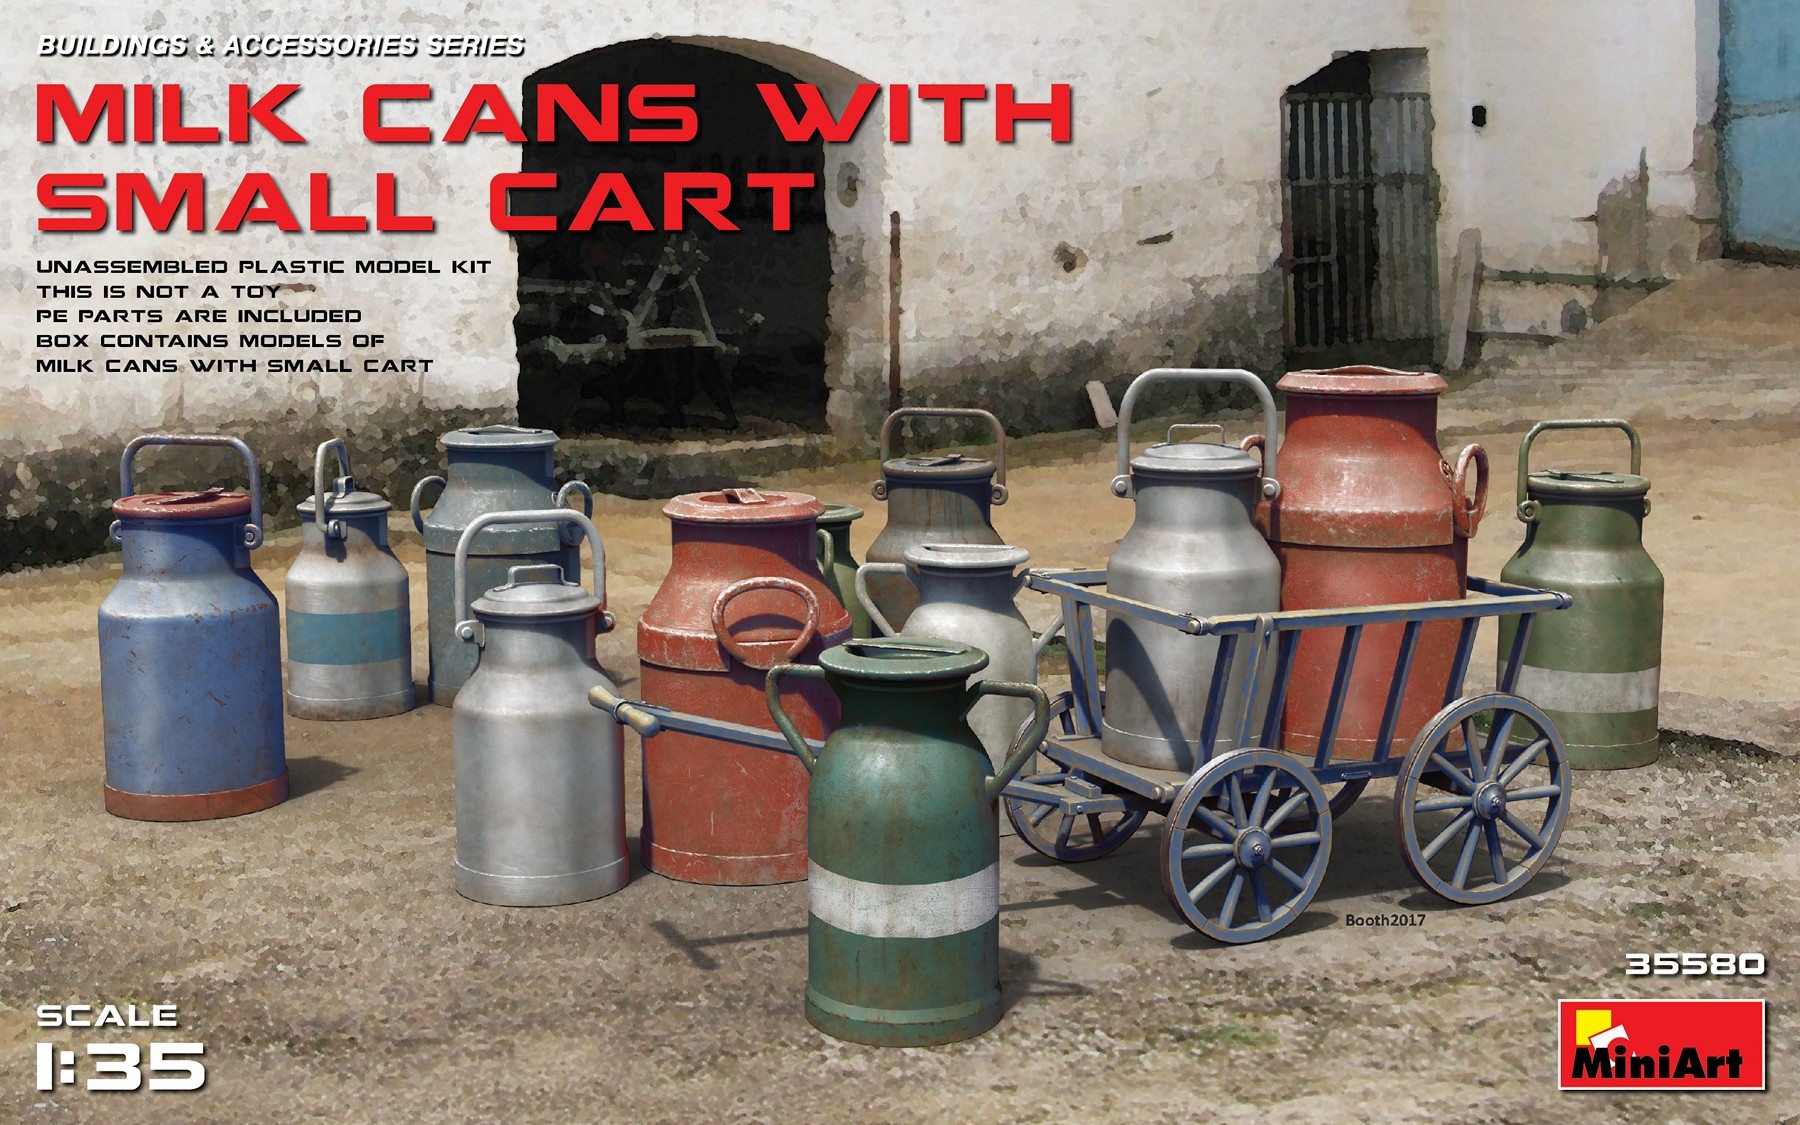 MiniArt Milk Cans with Small Cart (1/35)